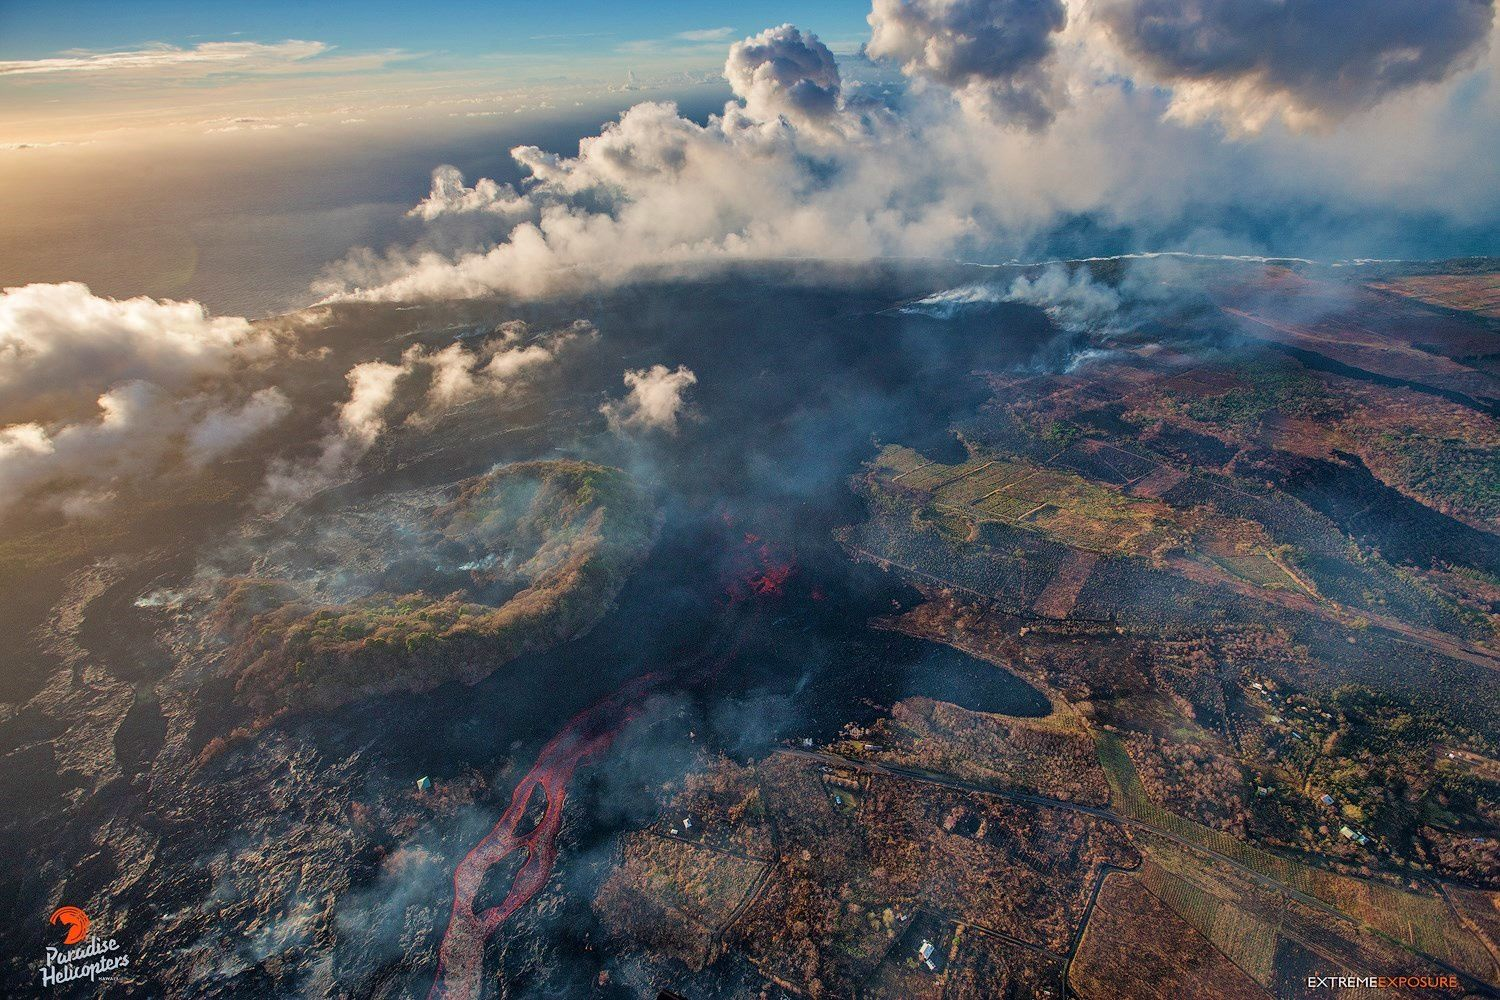 Kilauea East rift area - new path taken by lava flow west of Kapoho crater ( flow from bottom of photo to ocean) - photo Bruce Omori 11.07.2018 / 5:45